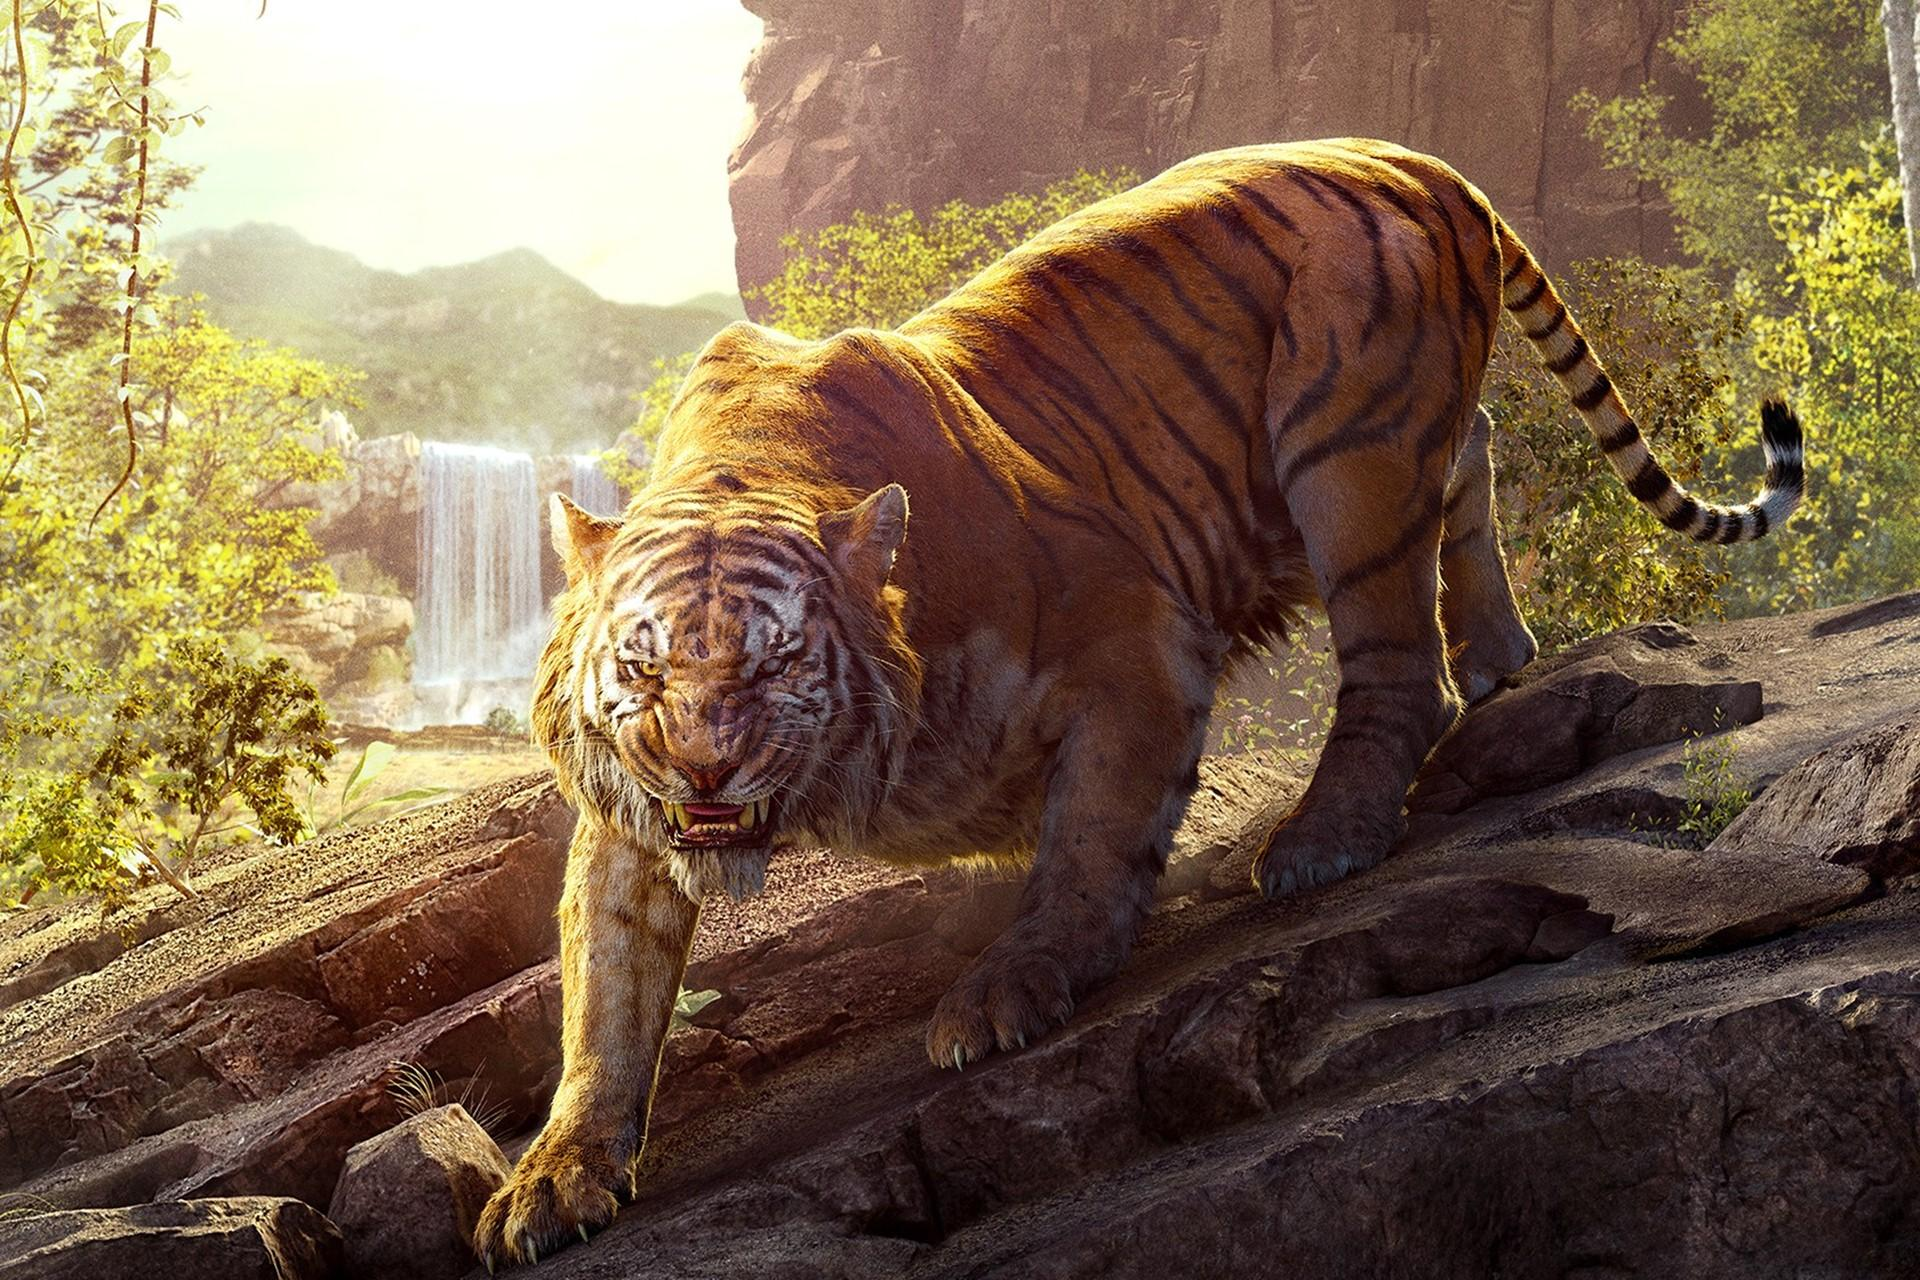 Tiger Wallpaper For Laptops, HD Quality Tiger Wallpapers for Free